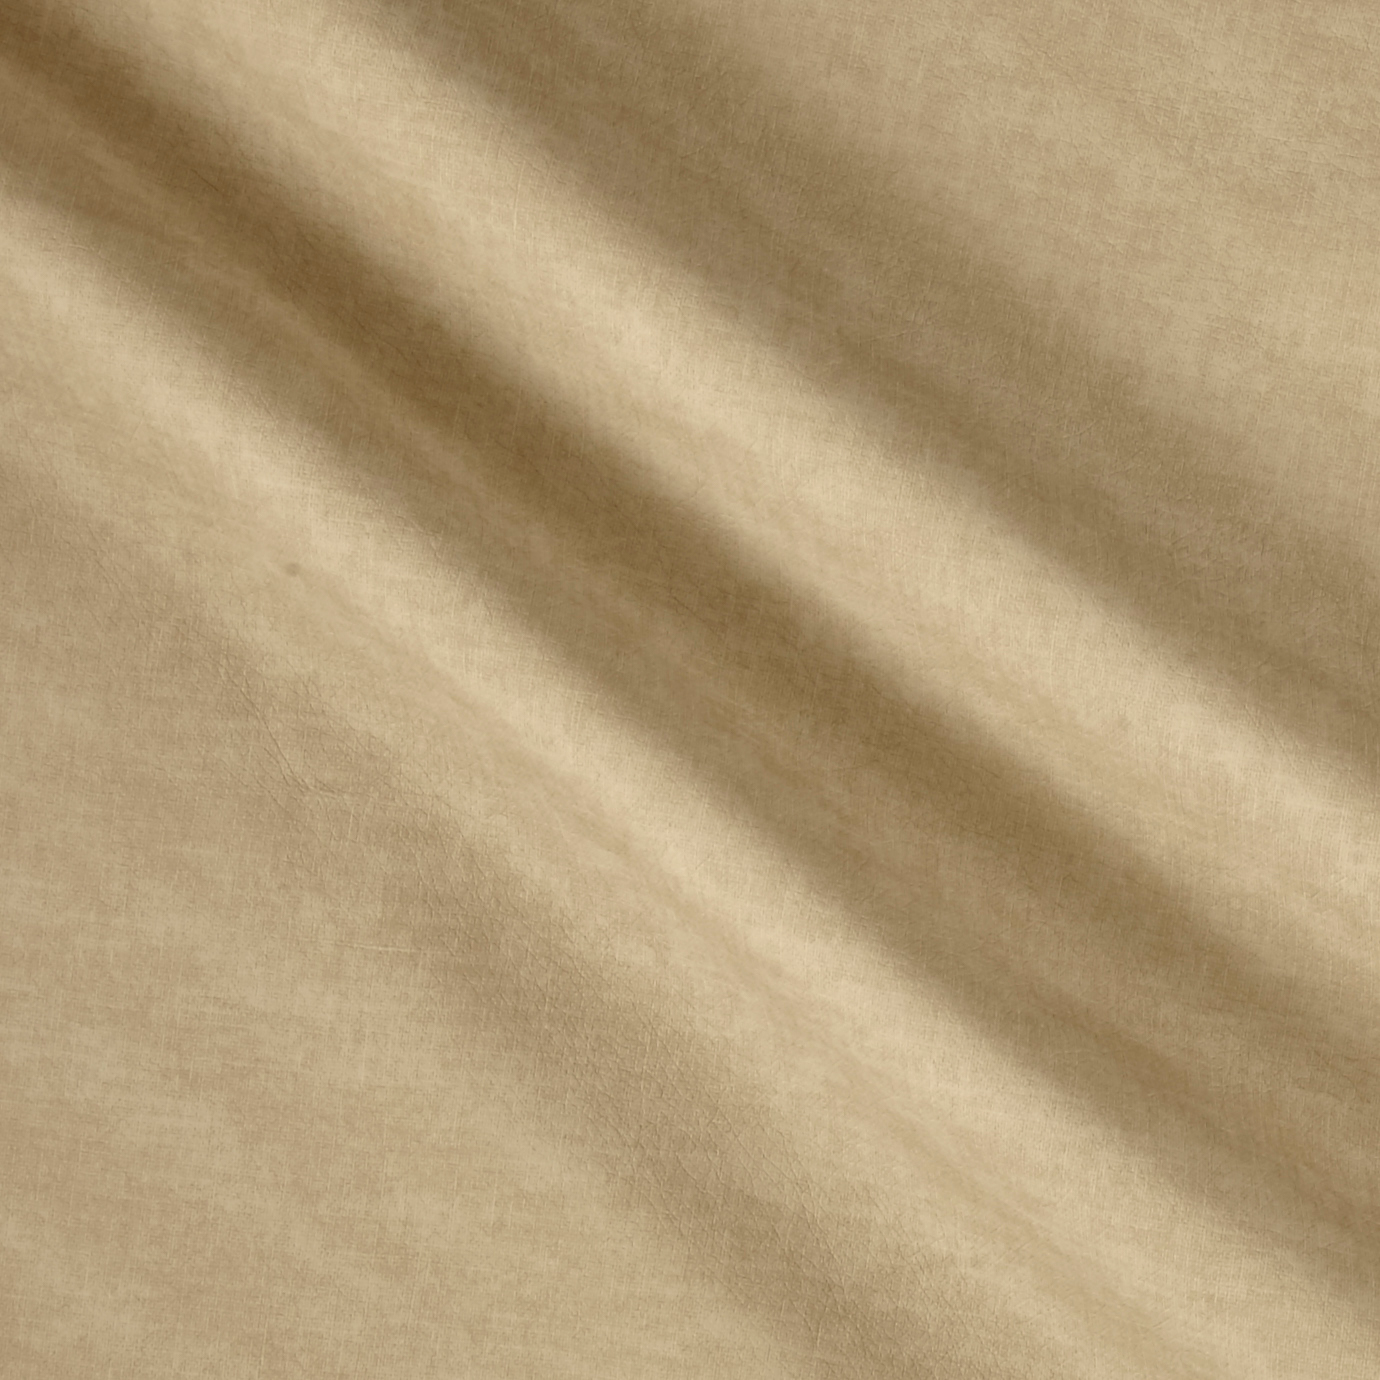 Richloom Tough Faux Leather Supima Sandstone Fabric By The Yard by Richloom in USA